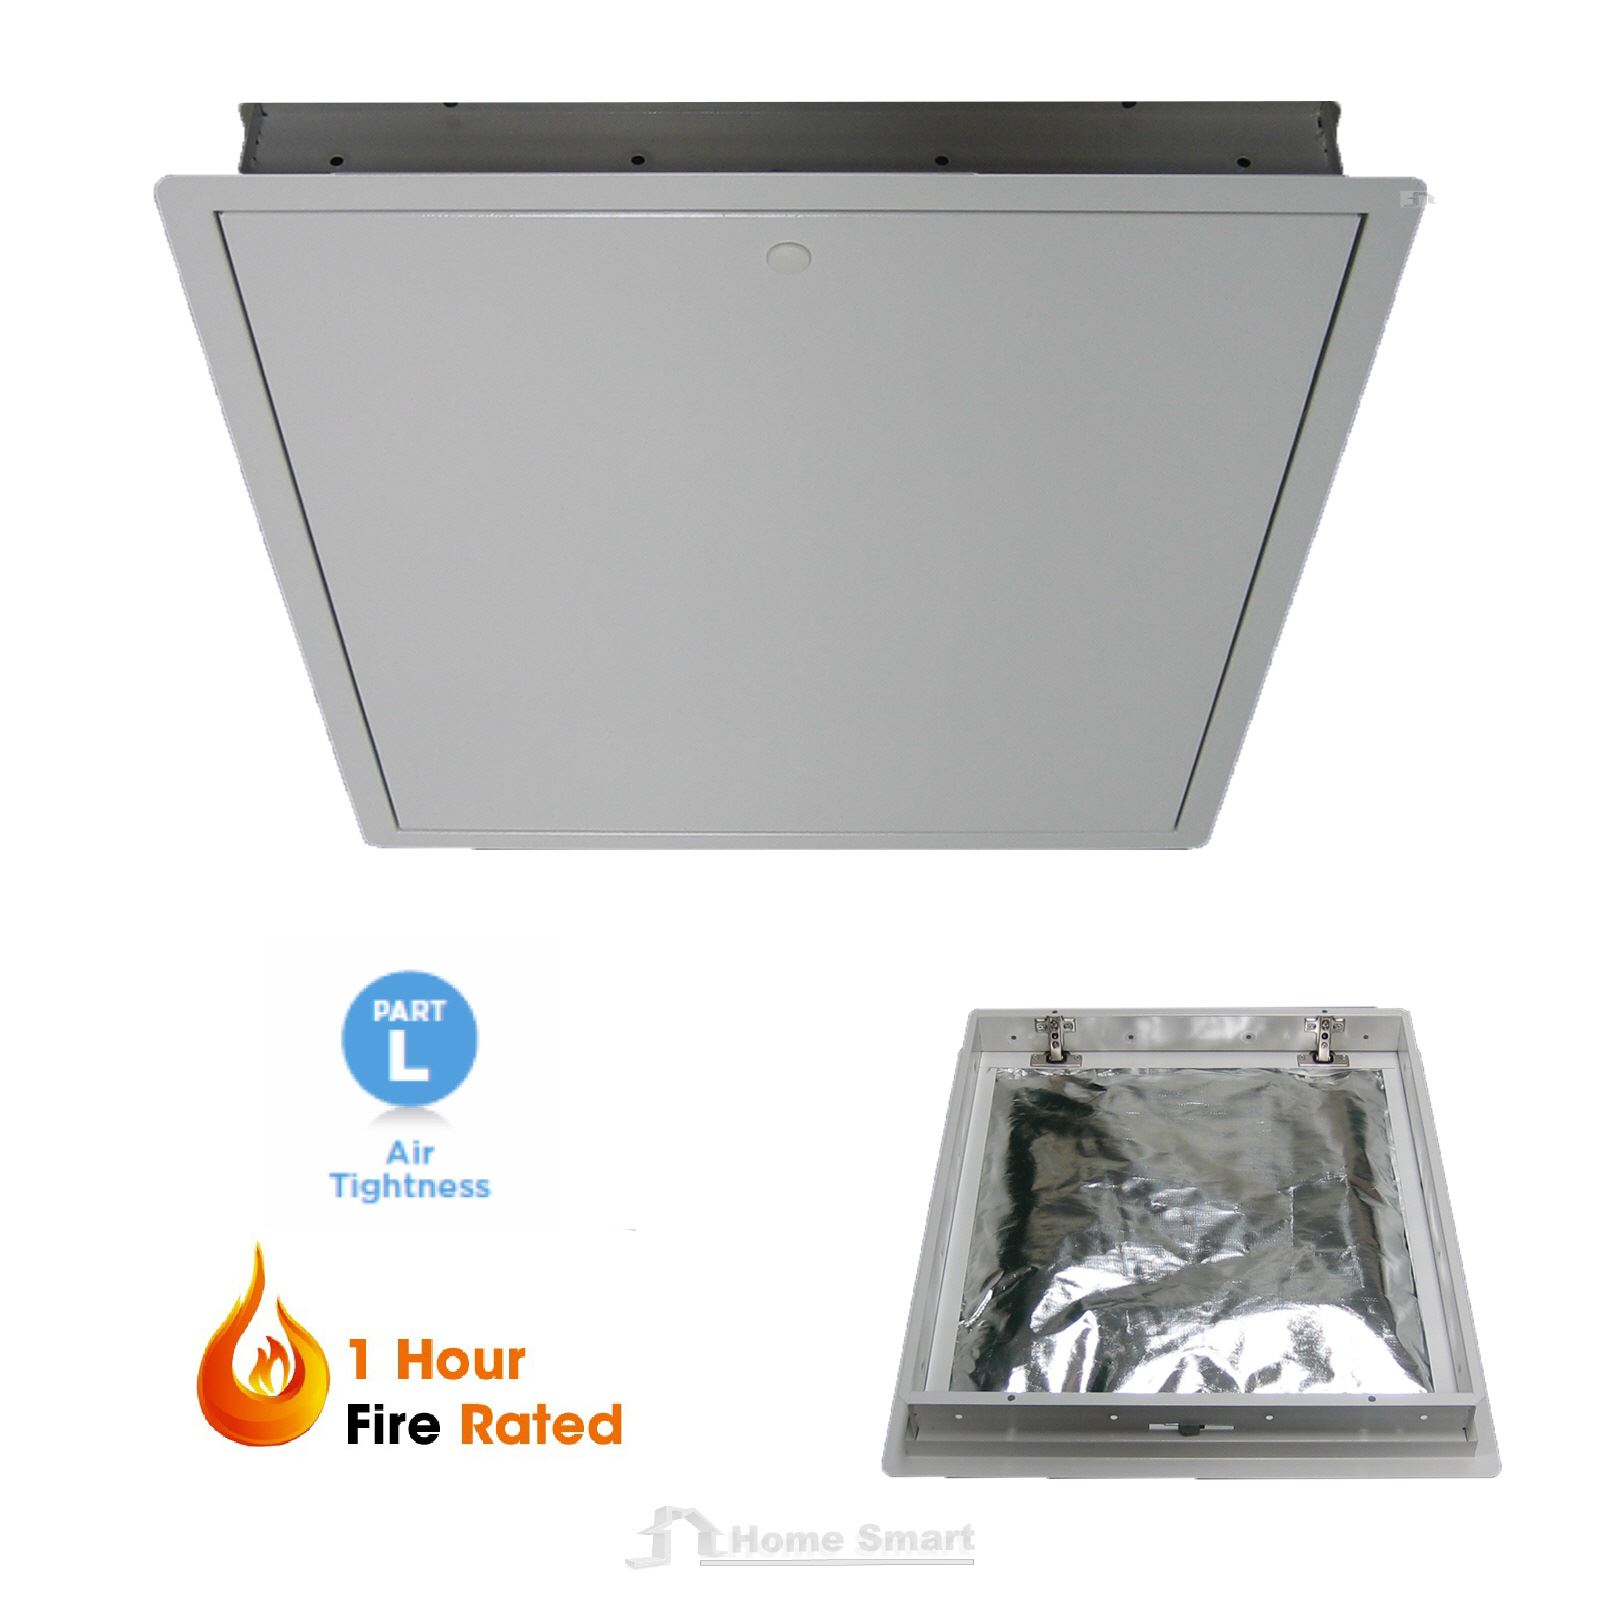 1 hour fire rated 542 x 740 steel loft trap door hinged for 1 hour rated door